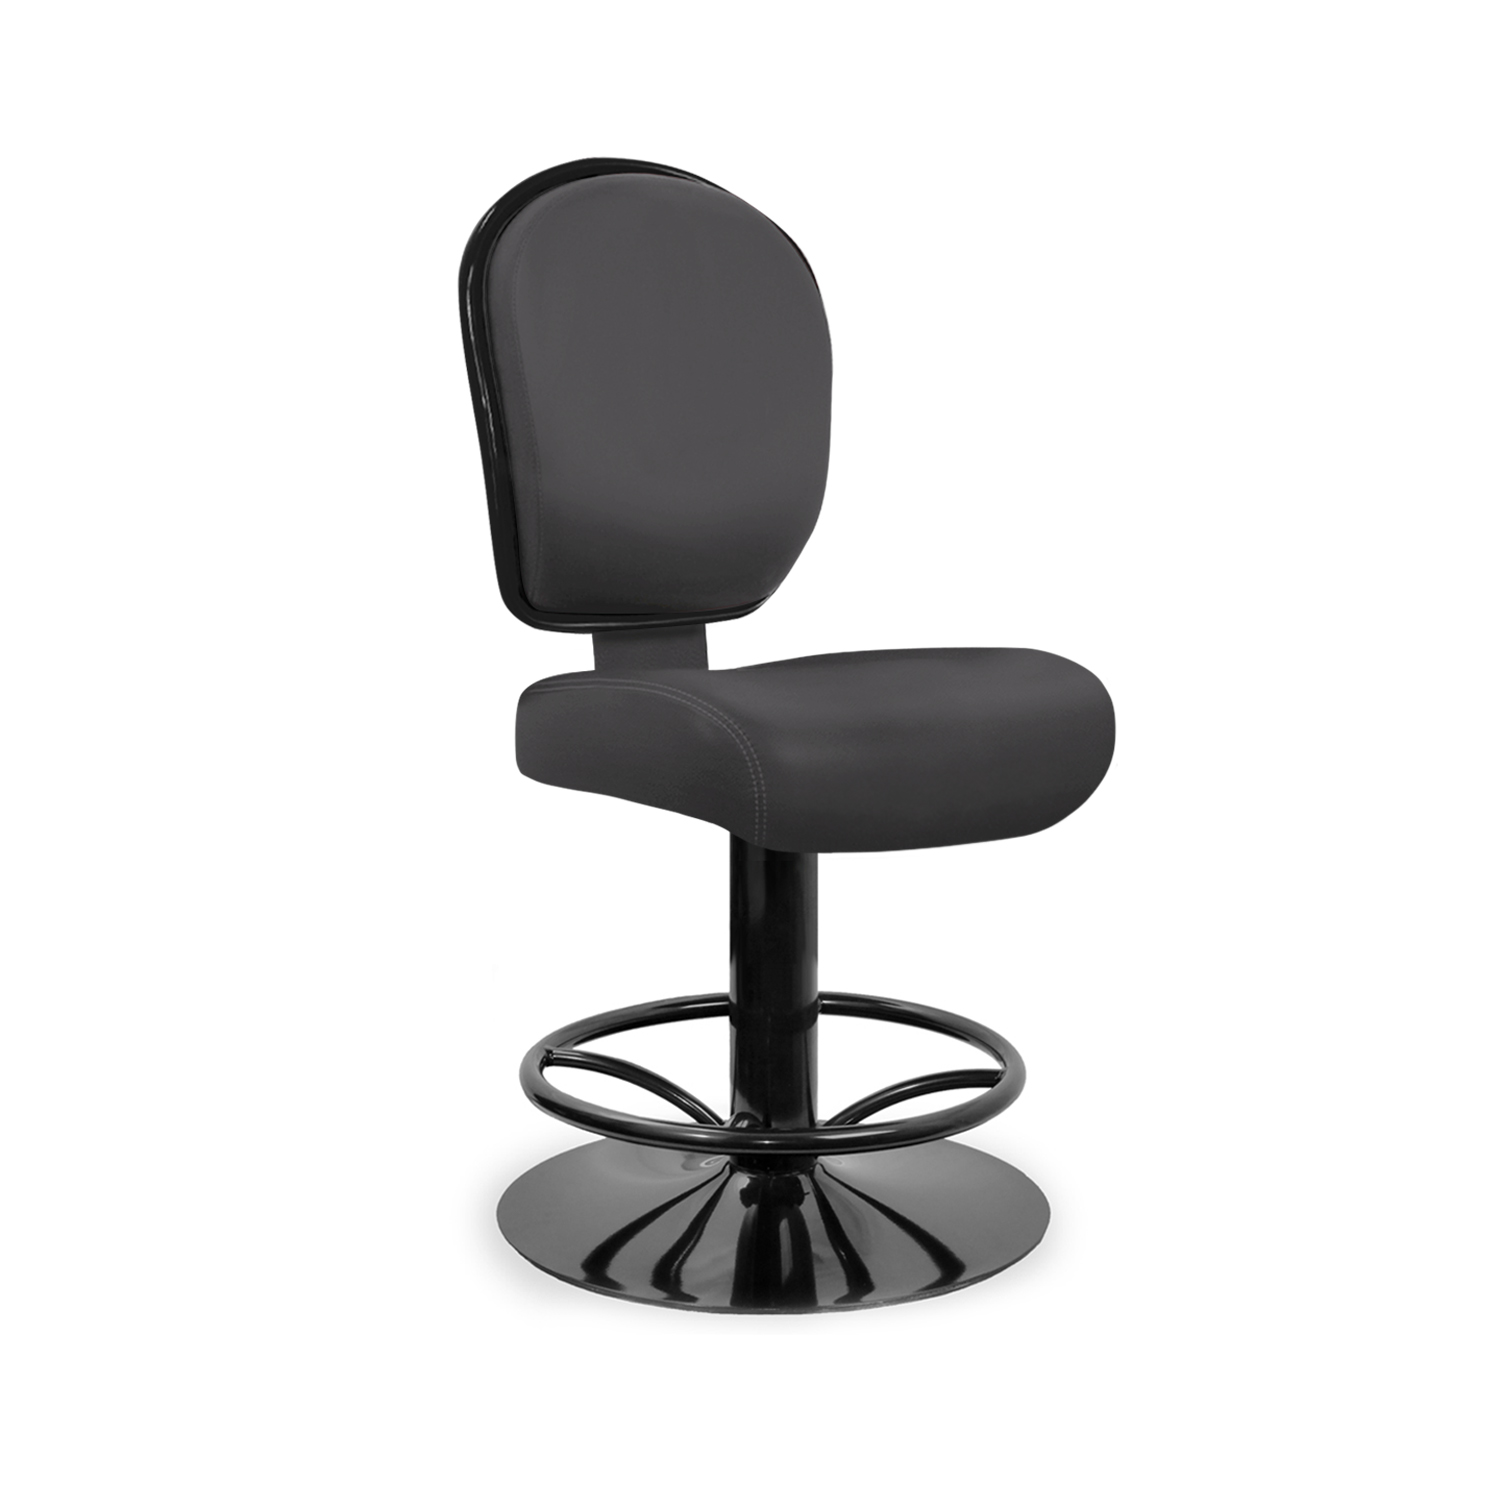 Fixed Pedestal with Curved Spoke Footrest